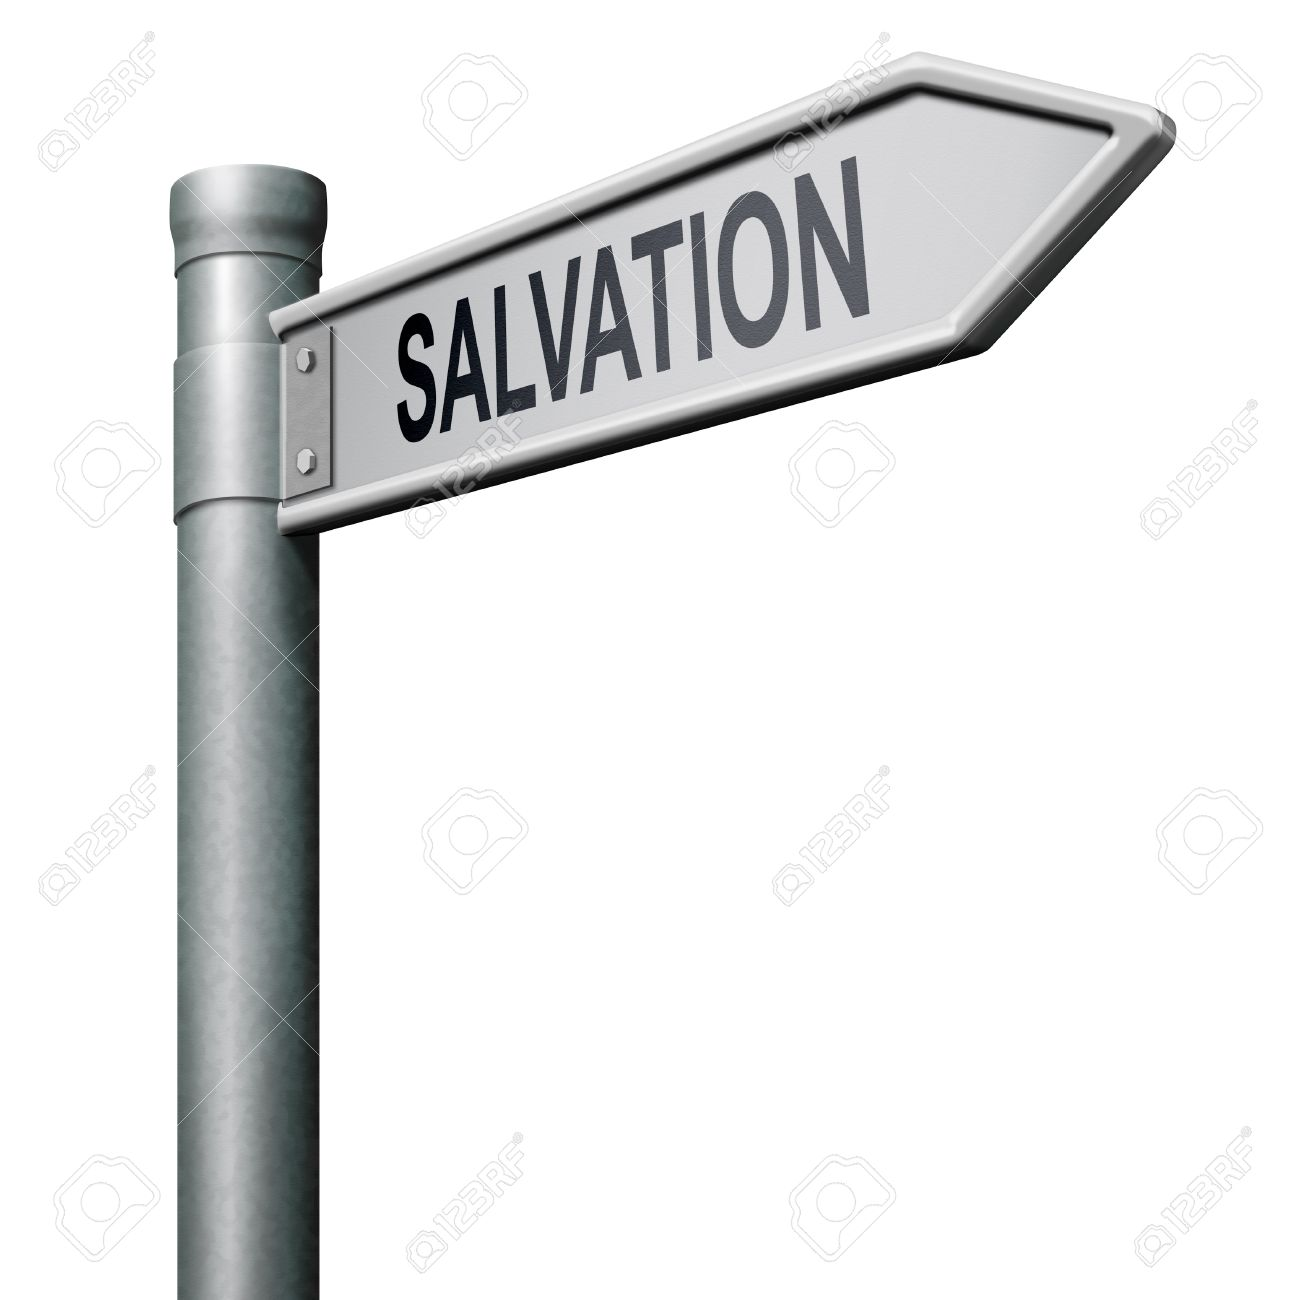 Salvation Clipart.